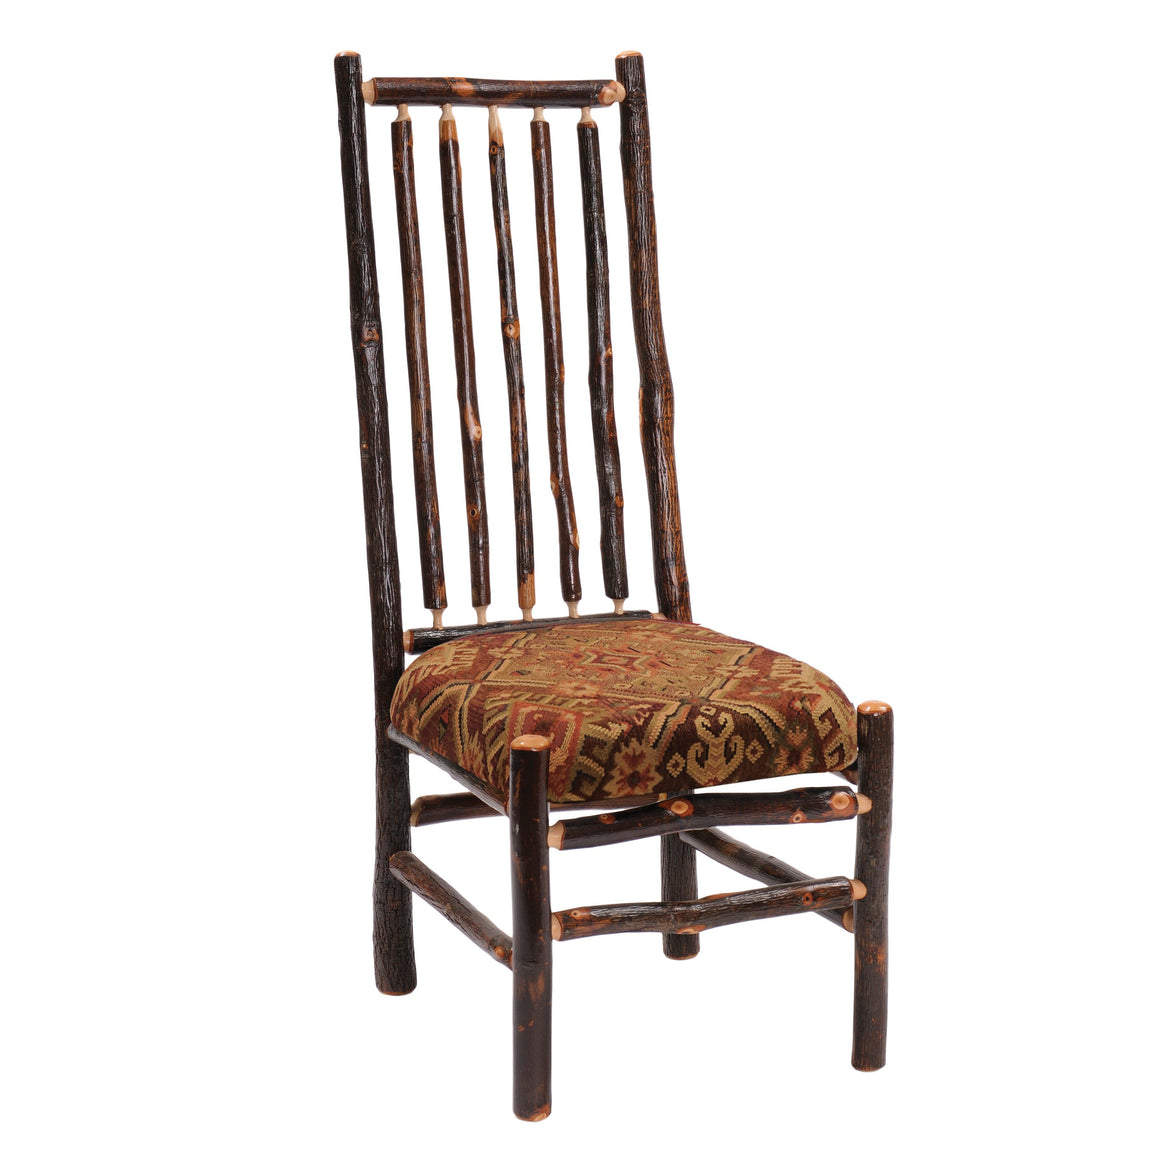 Natural Hickory Log High-back Spoked Chair Custom Upholstered - Rustic Deco Incorporated